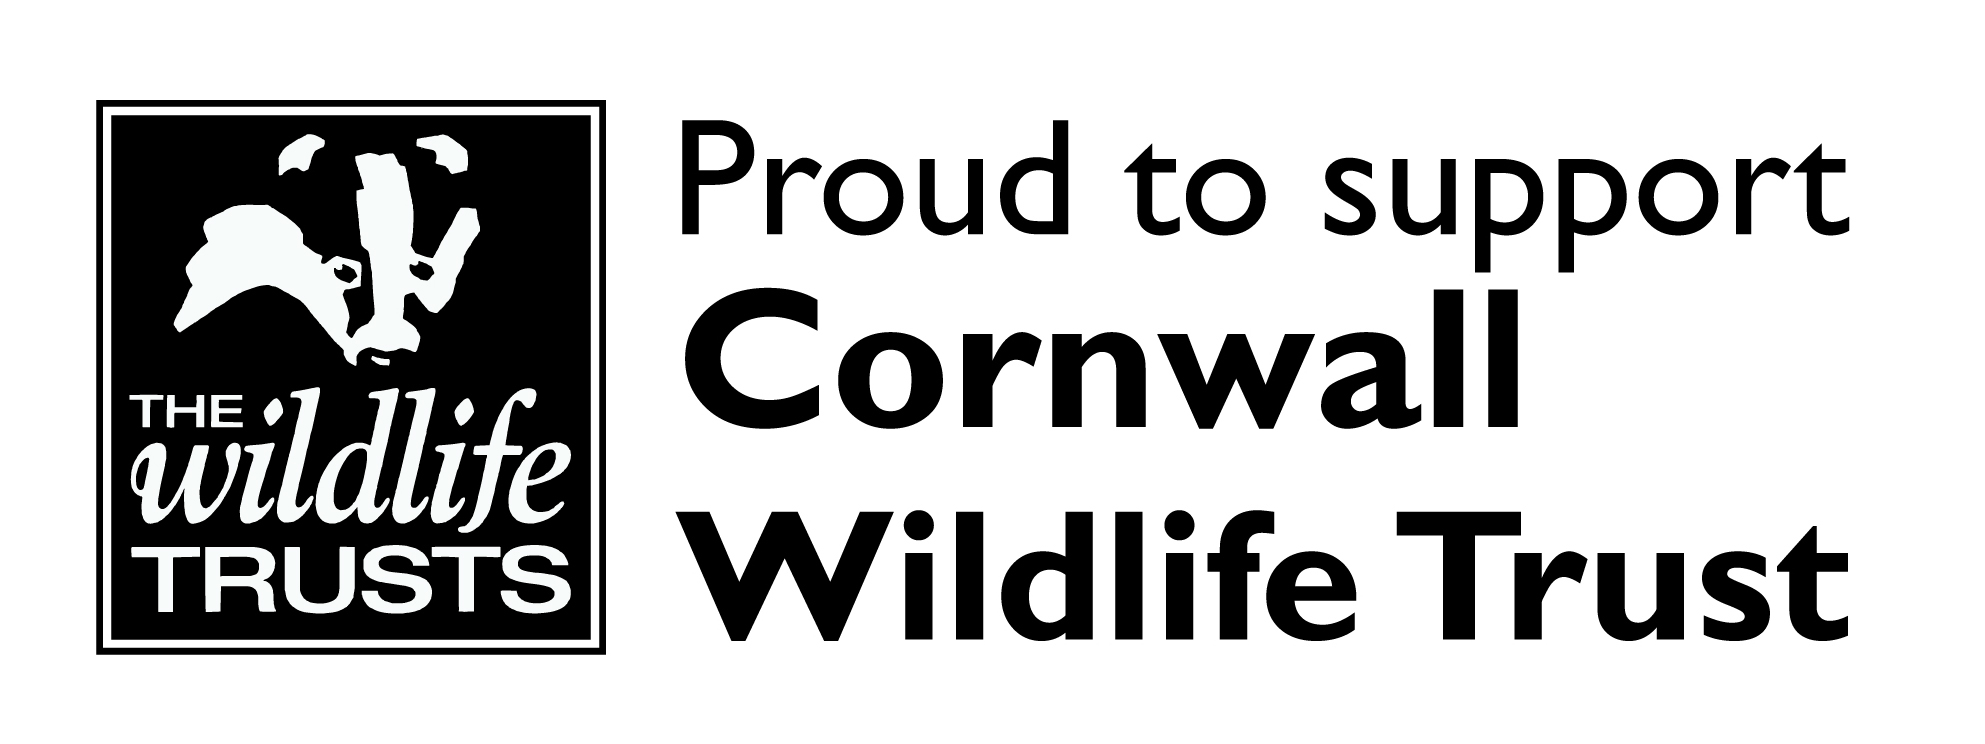 Cornwall Wildlife Trust Business Supporter logo left 2015